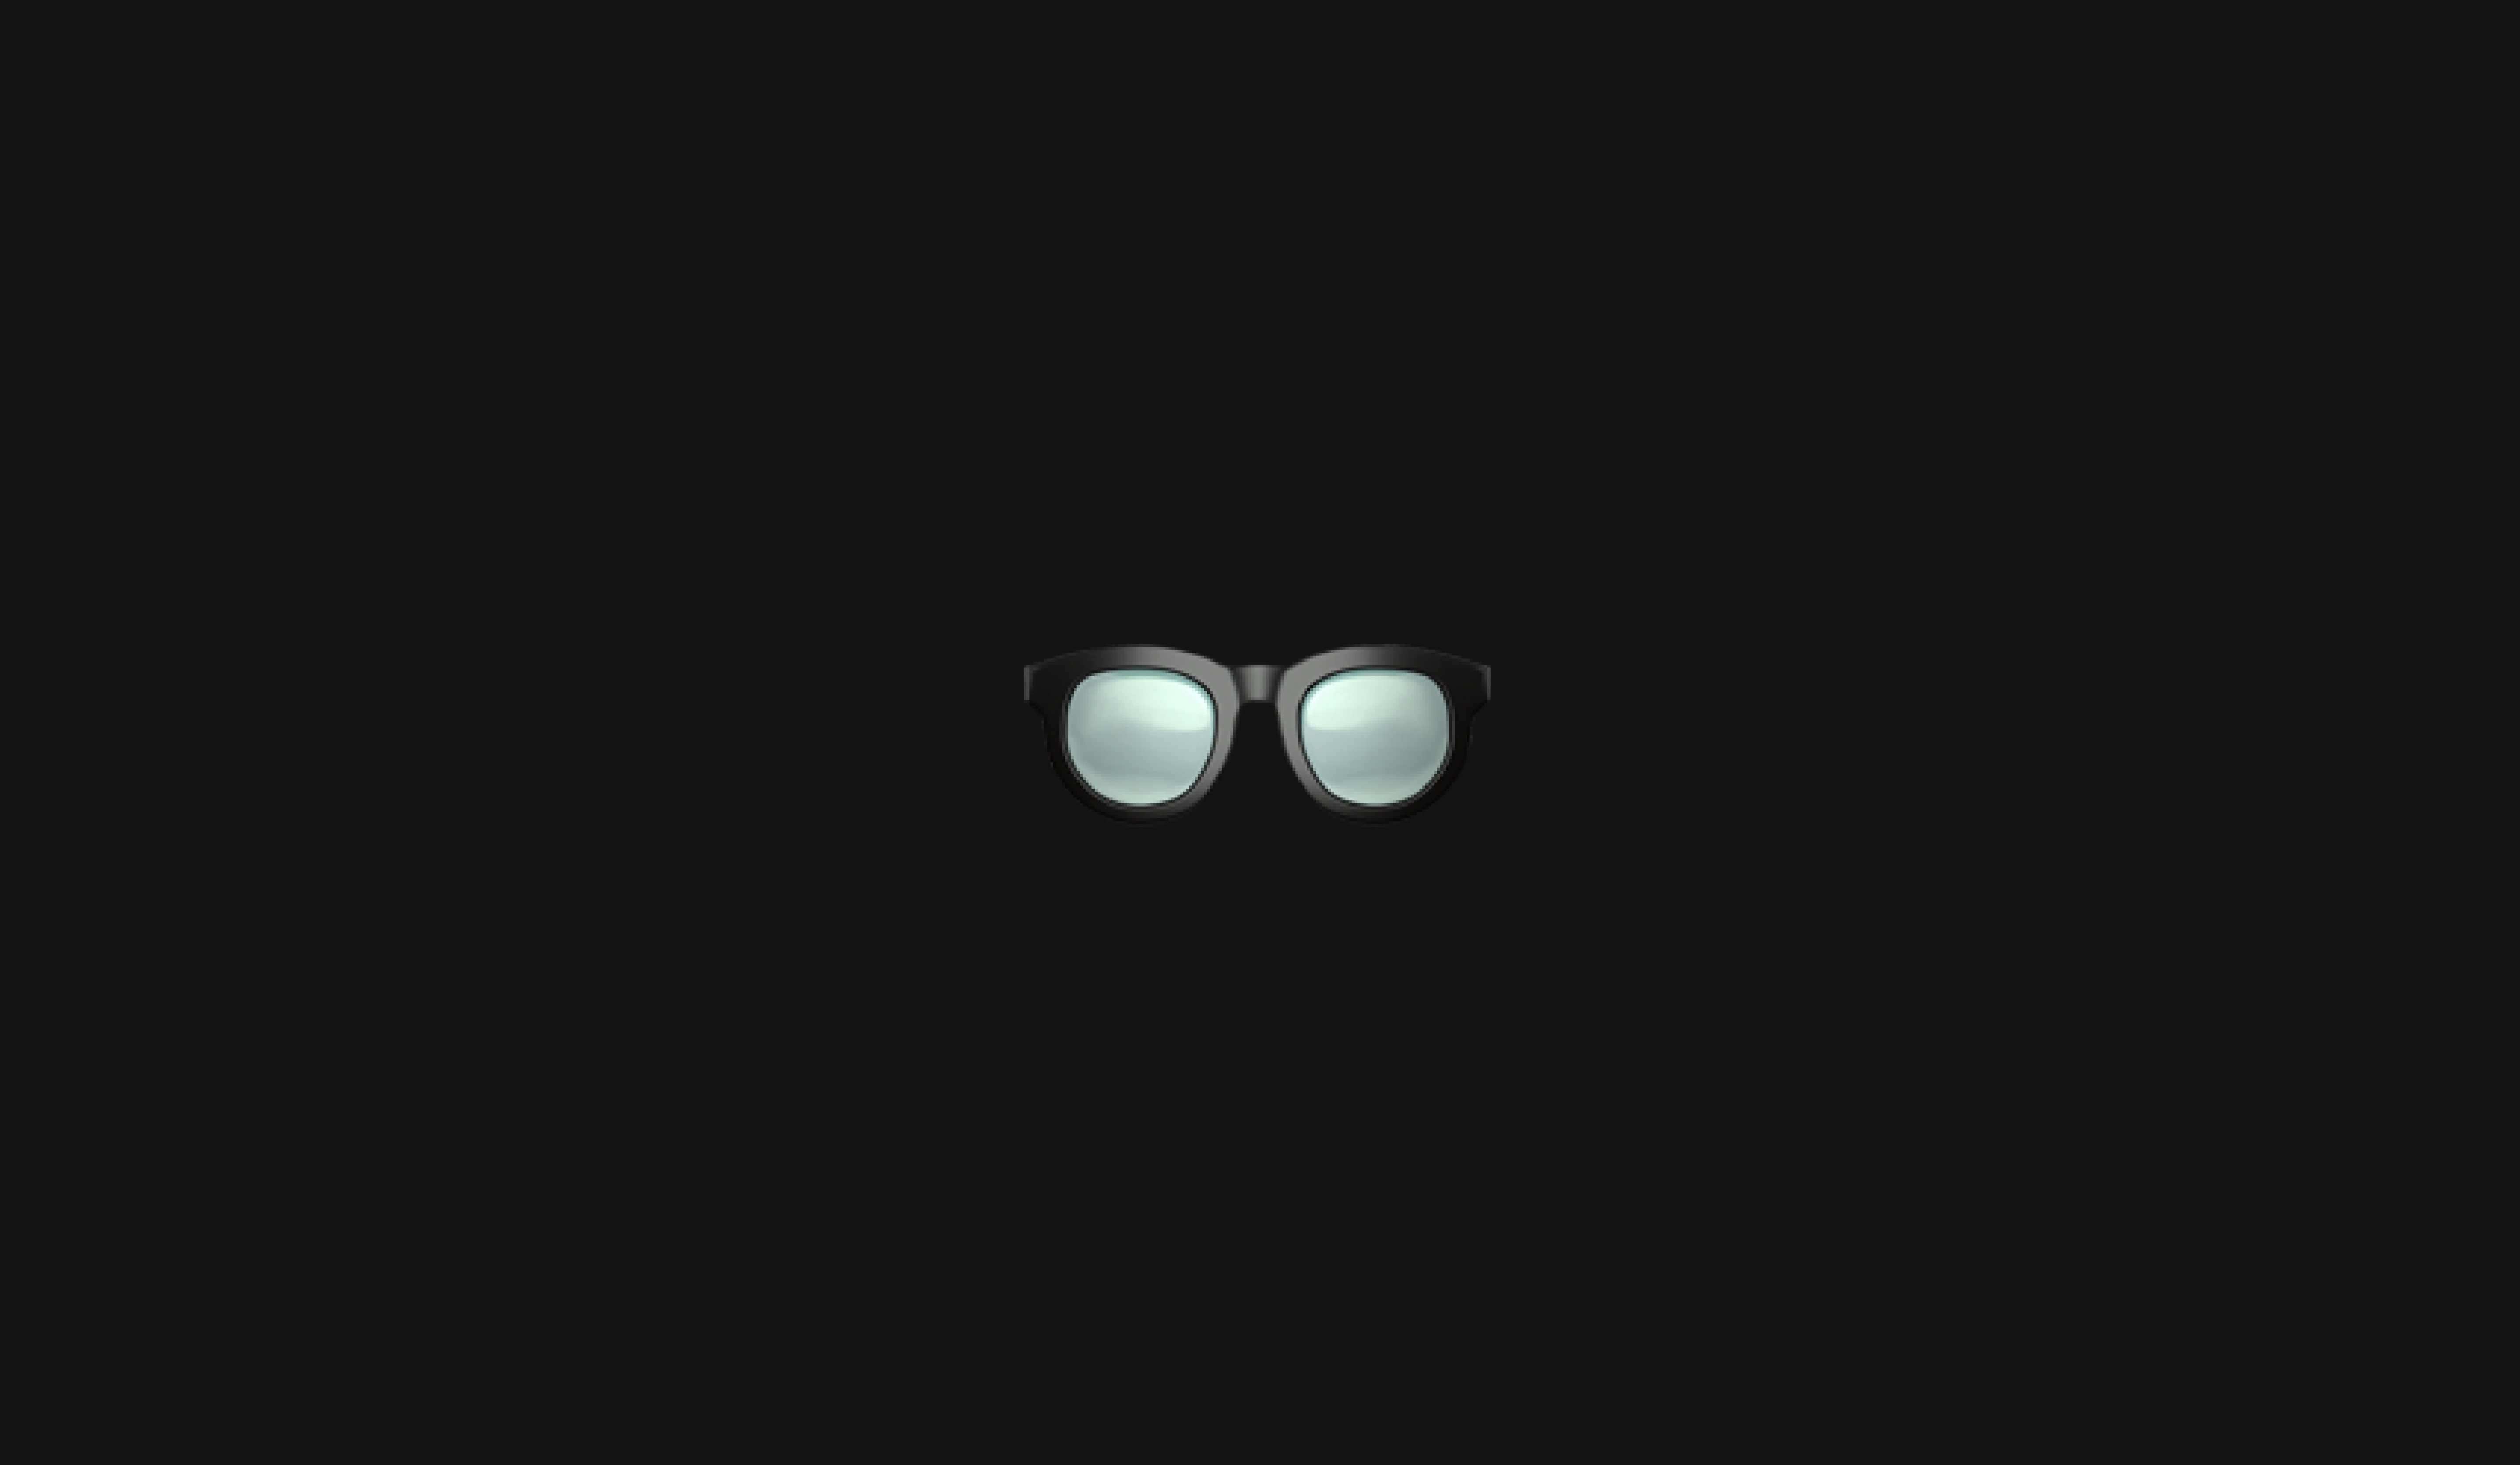 A fresh vision for optical retail - Branding & Positionering